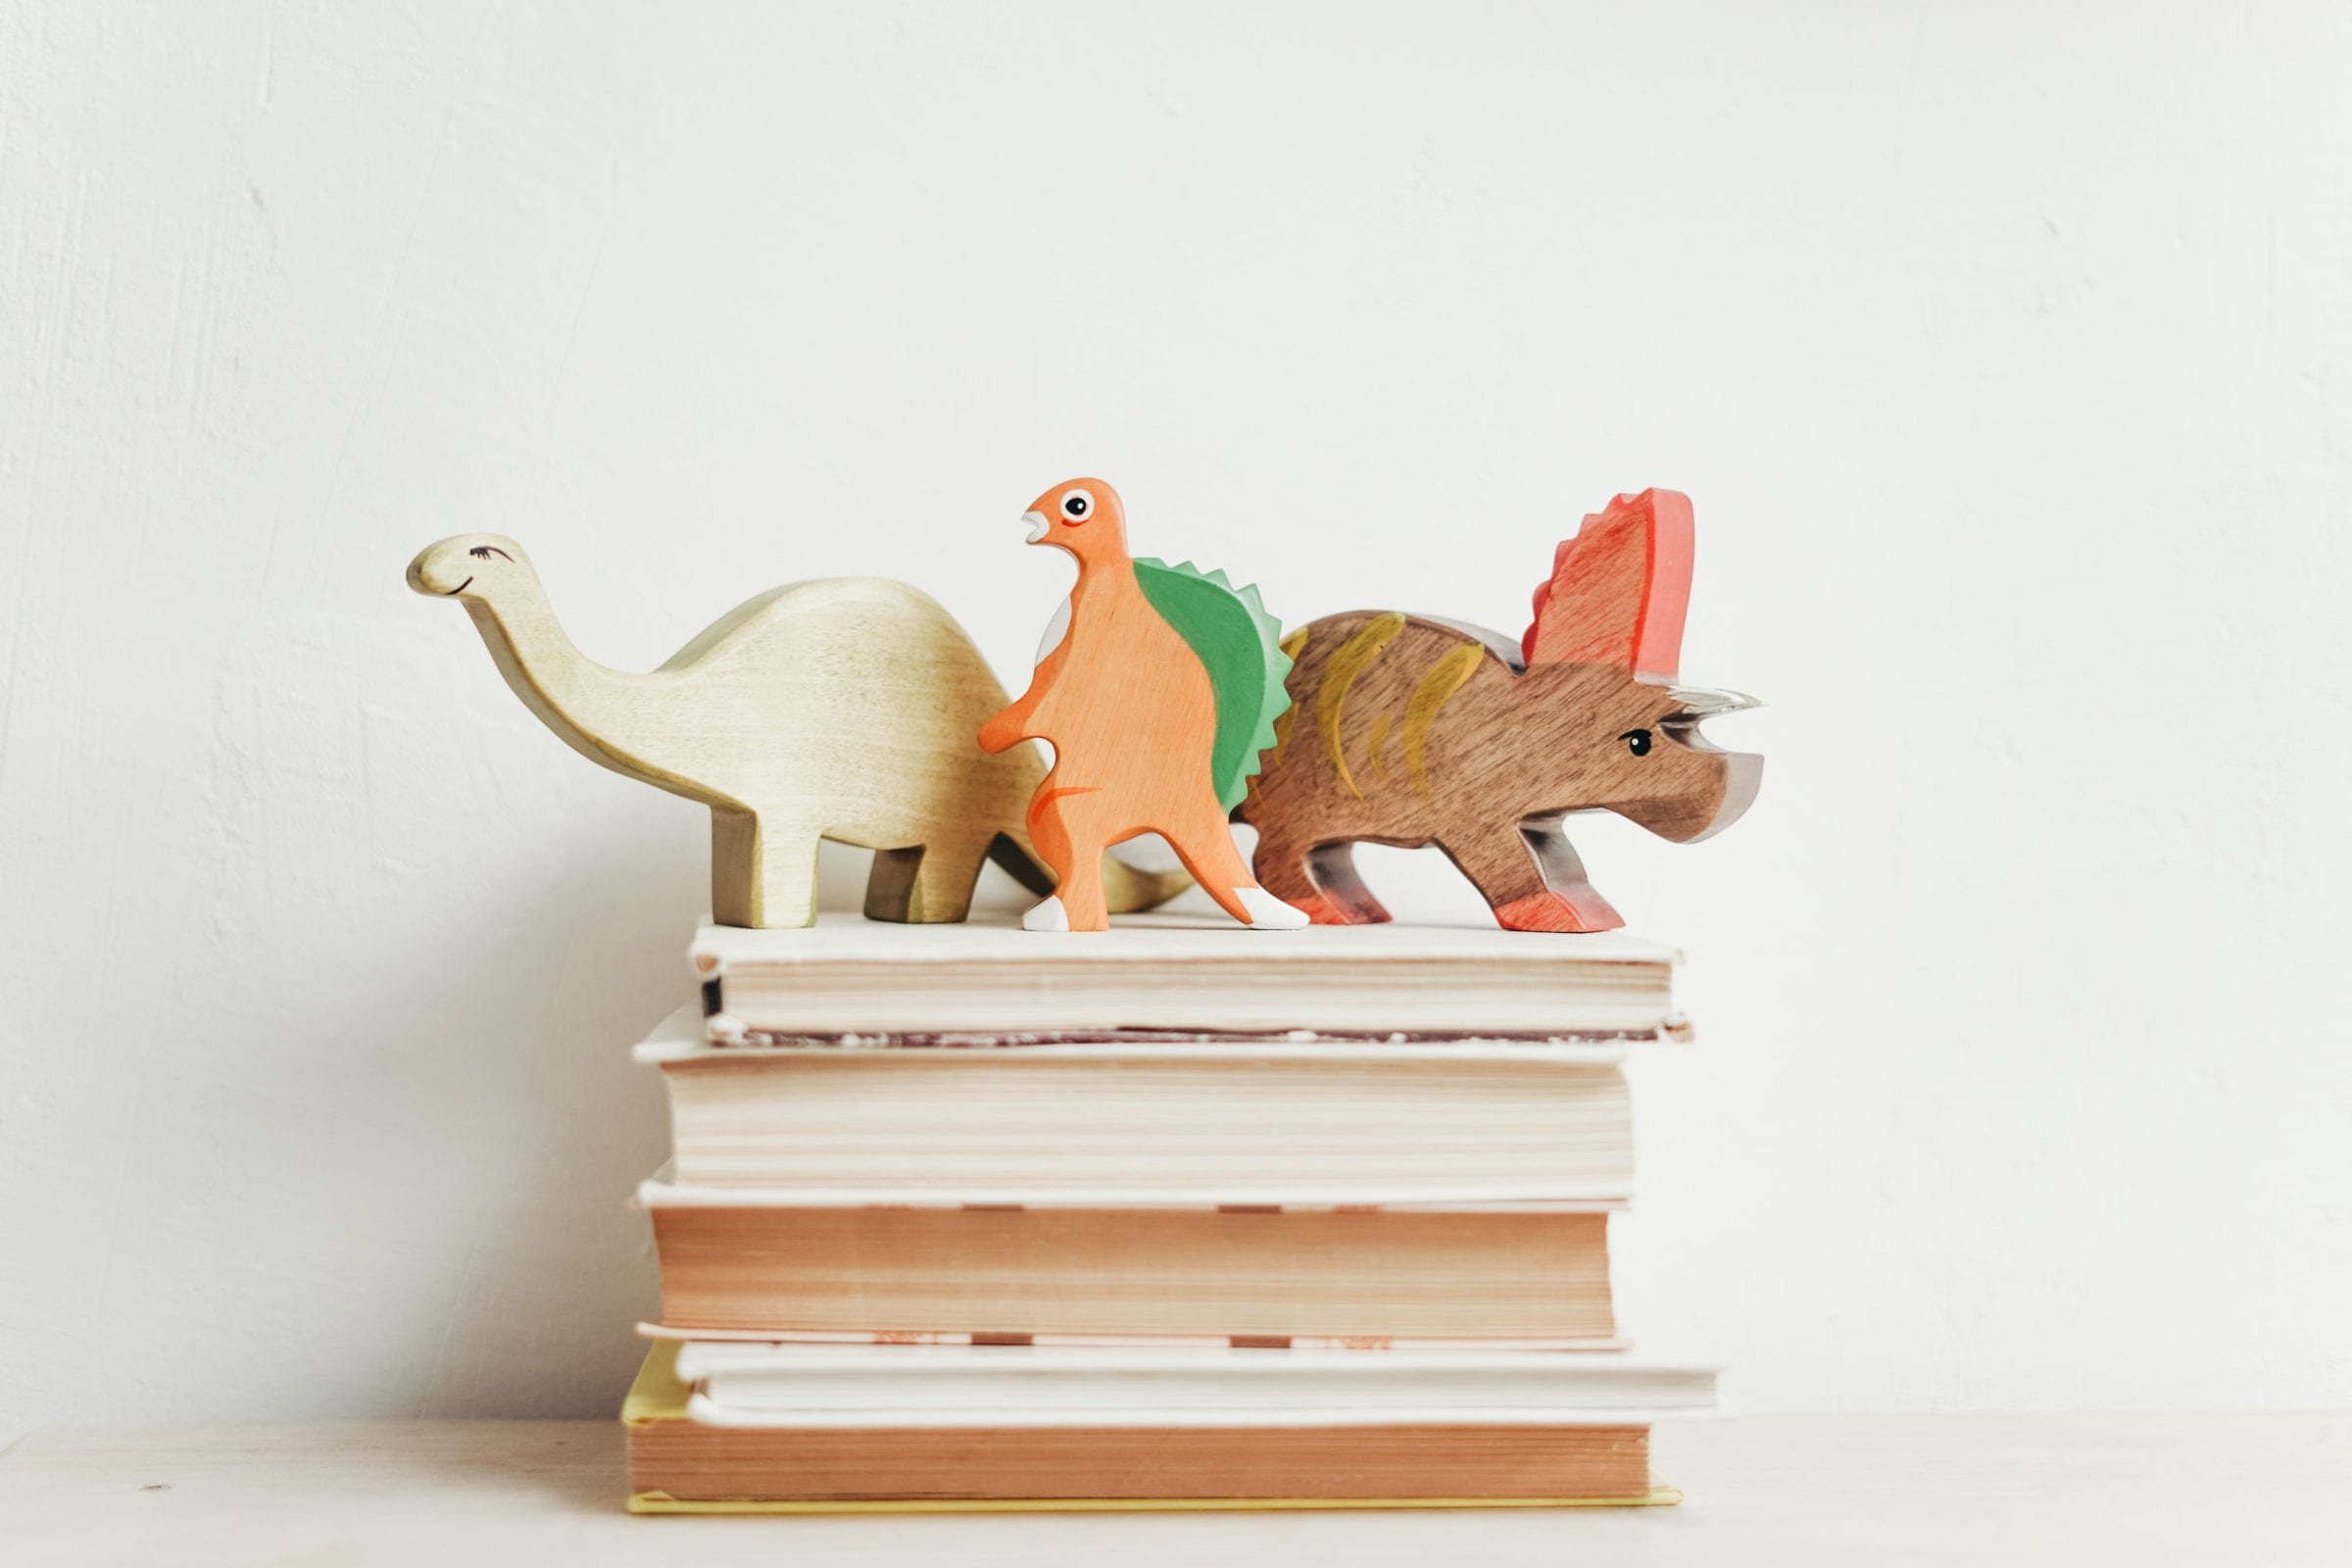 10 Montessori Books You Need to Add to Your Library